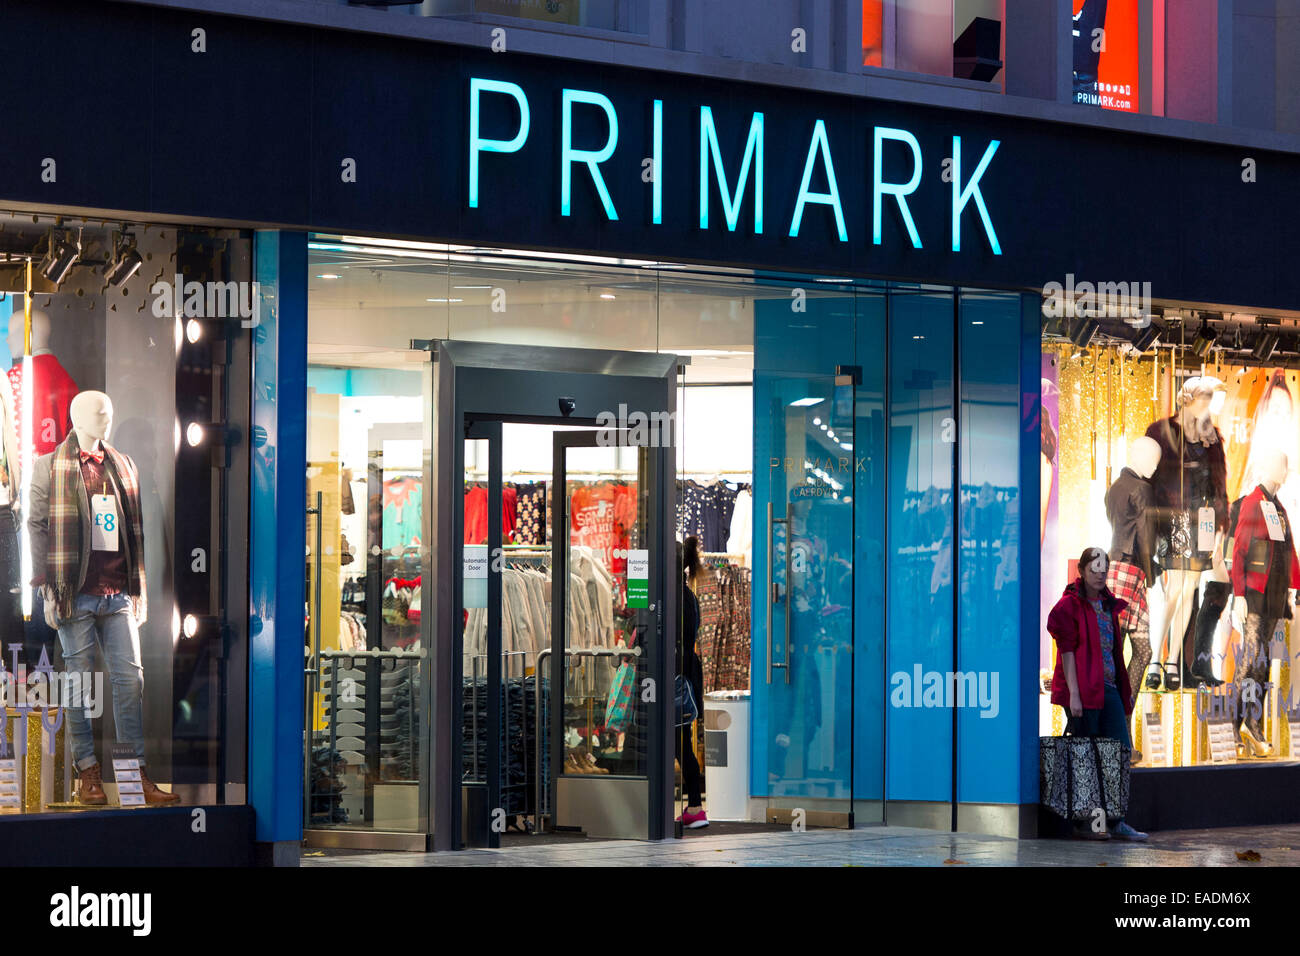 A Primark store on the high street in Cardiff, South Wales. - Stock Image